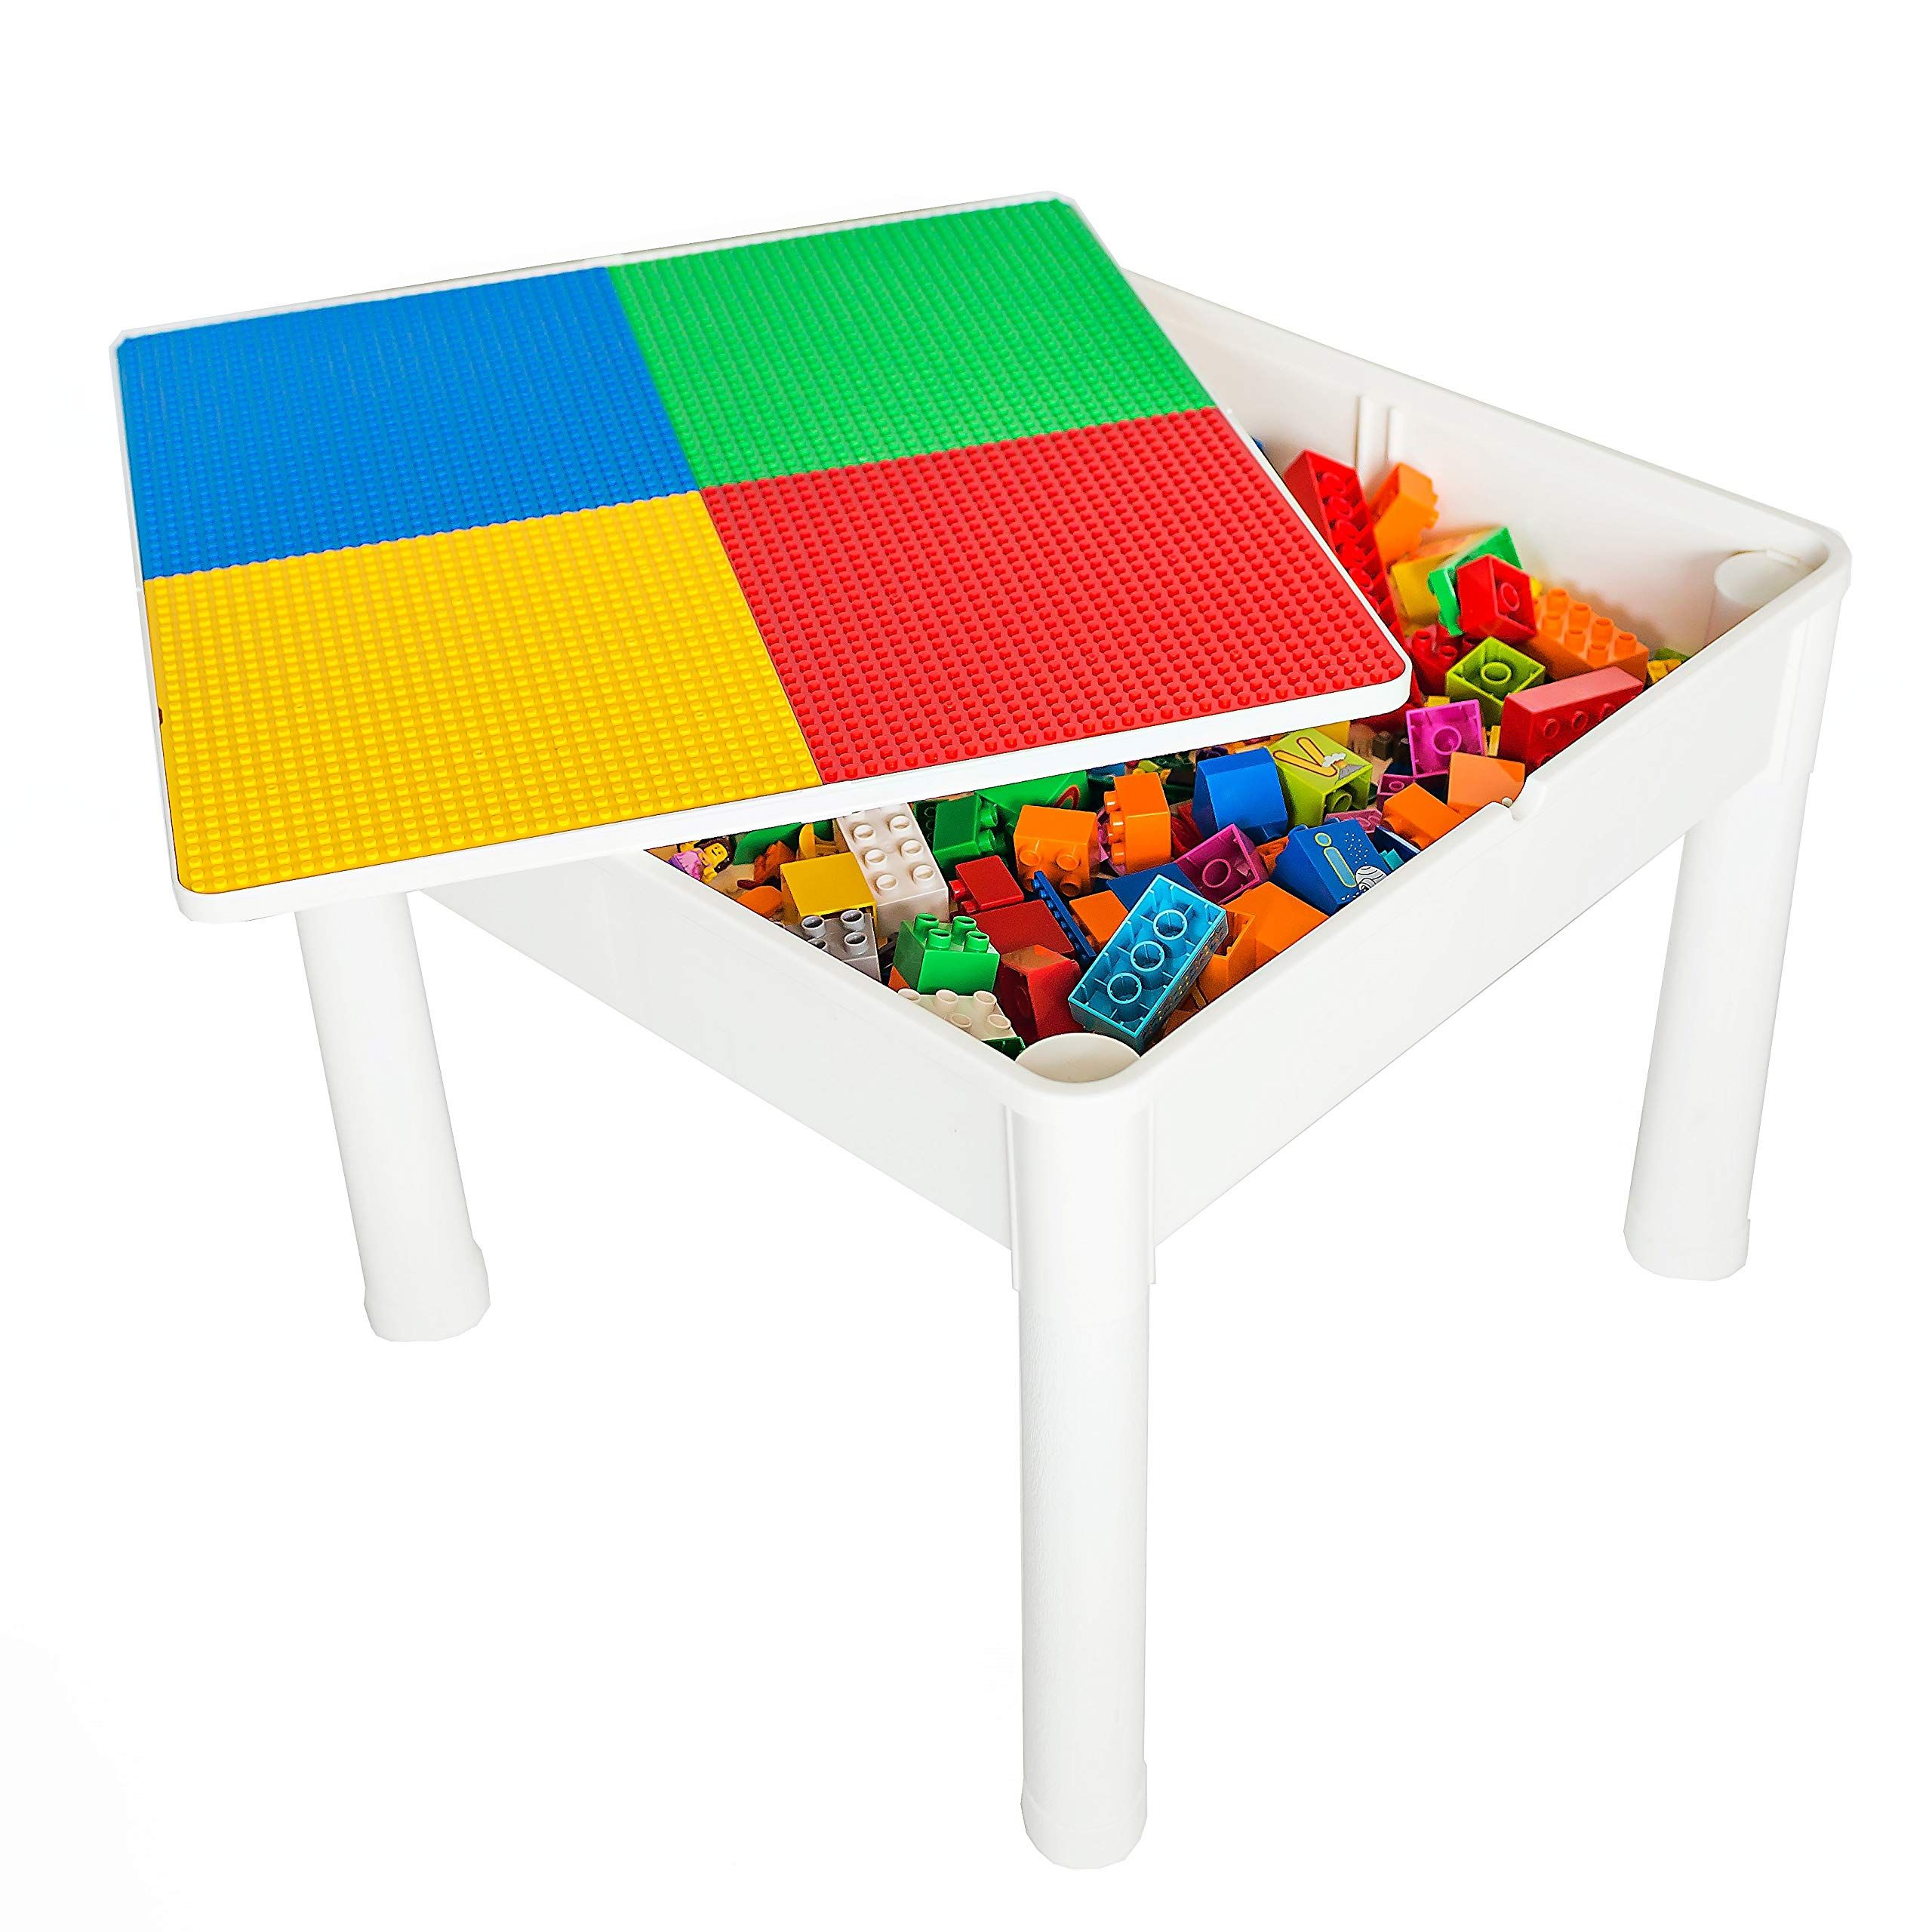 4185ac854a6 Lego Table Kids 4 in 1 Play and Build Table Set for Indoor Activity Outdoor  Water Play Toy Storage and Building Block Fun Compatible w/Lego and Duplo  Bricks ...